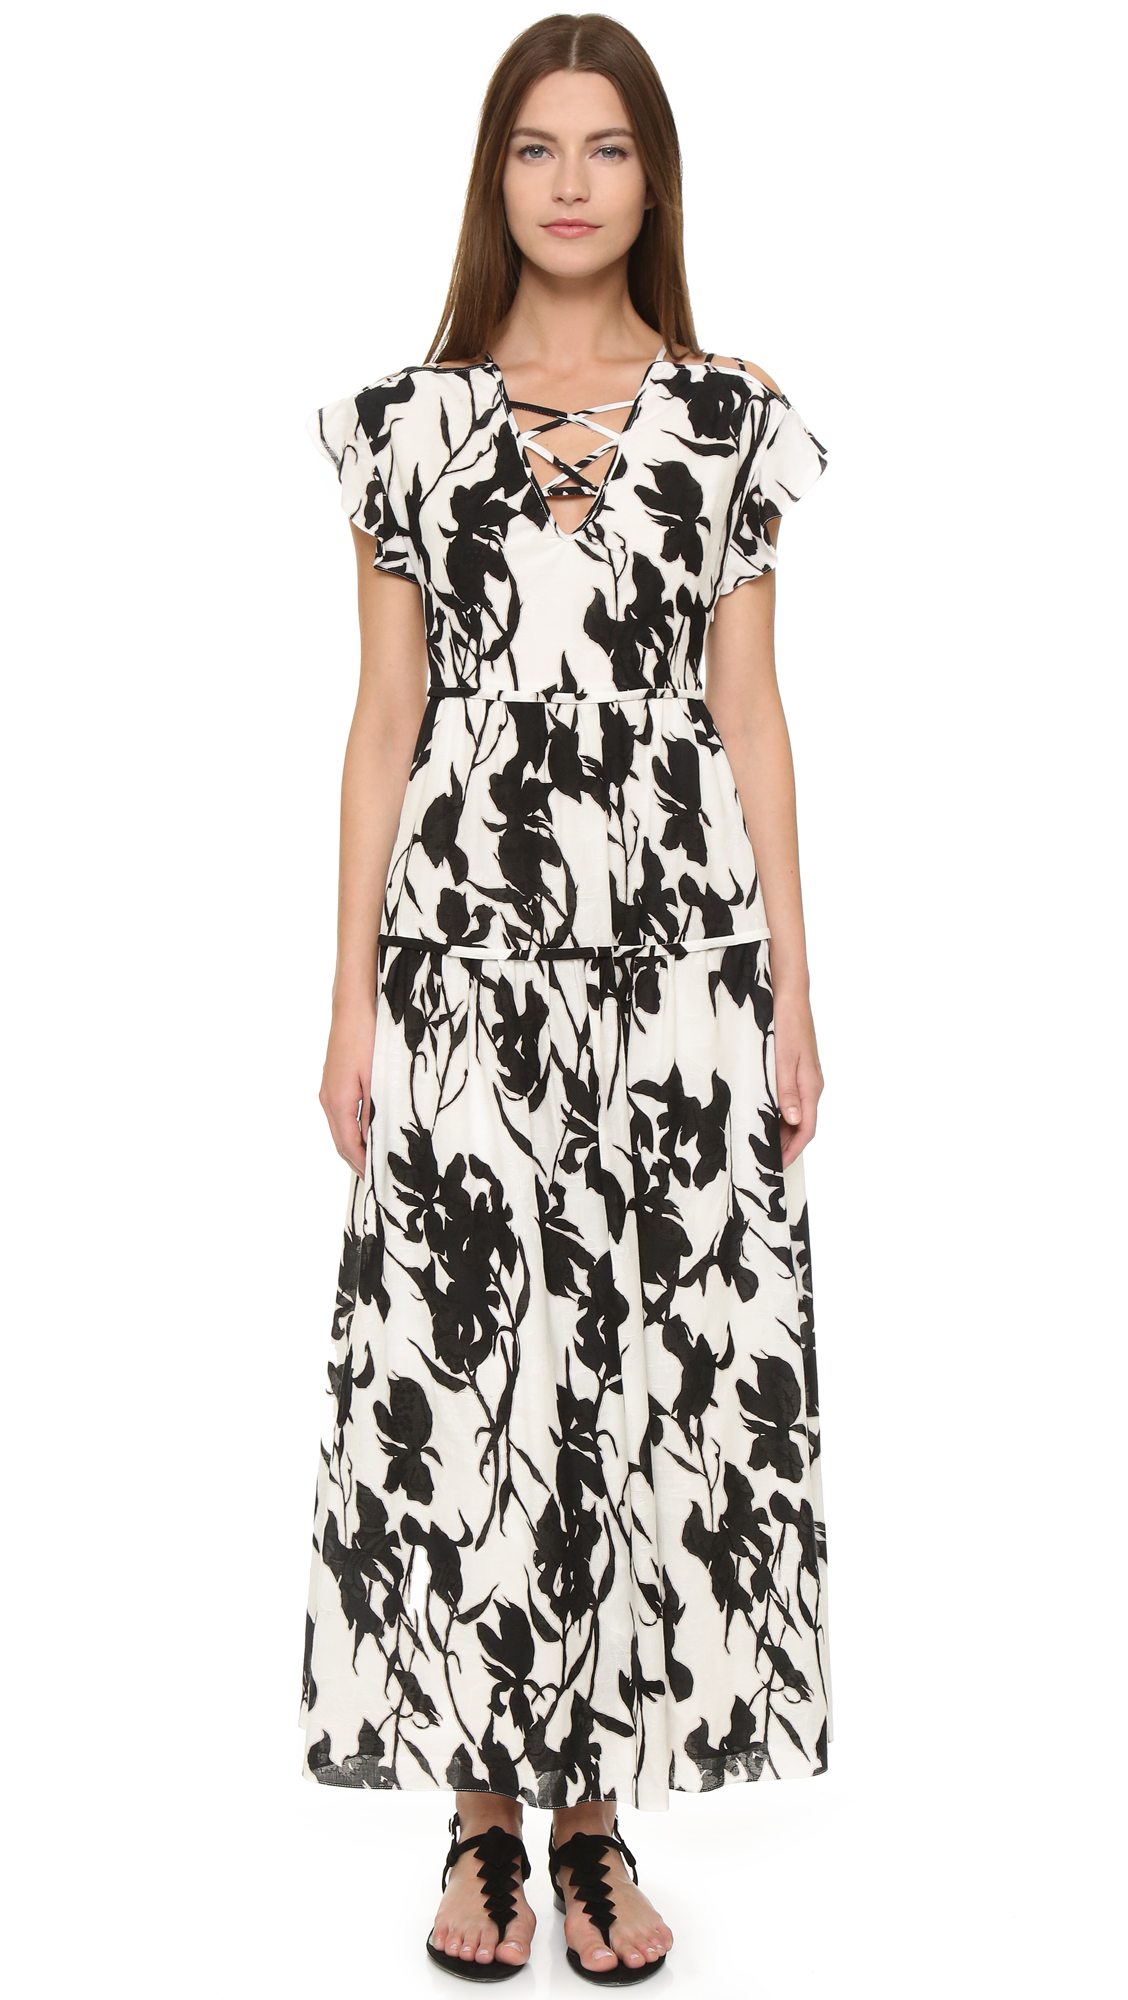 Thakoon Lace Up Floral Dress - Black/White at Shopbop